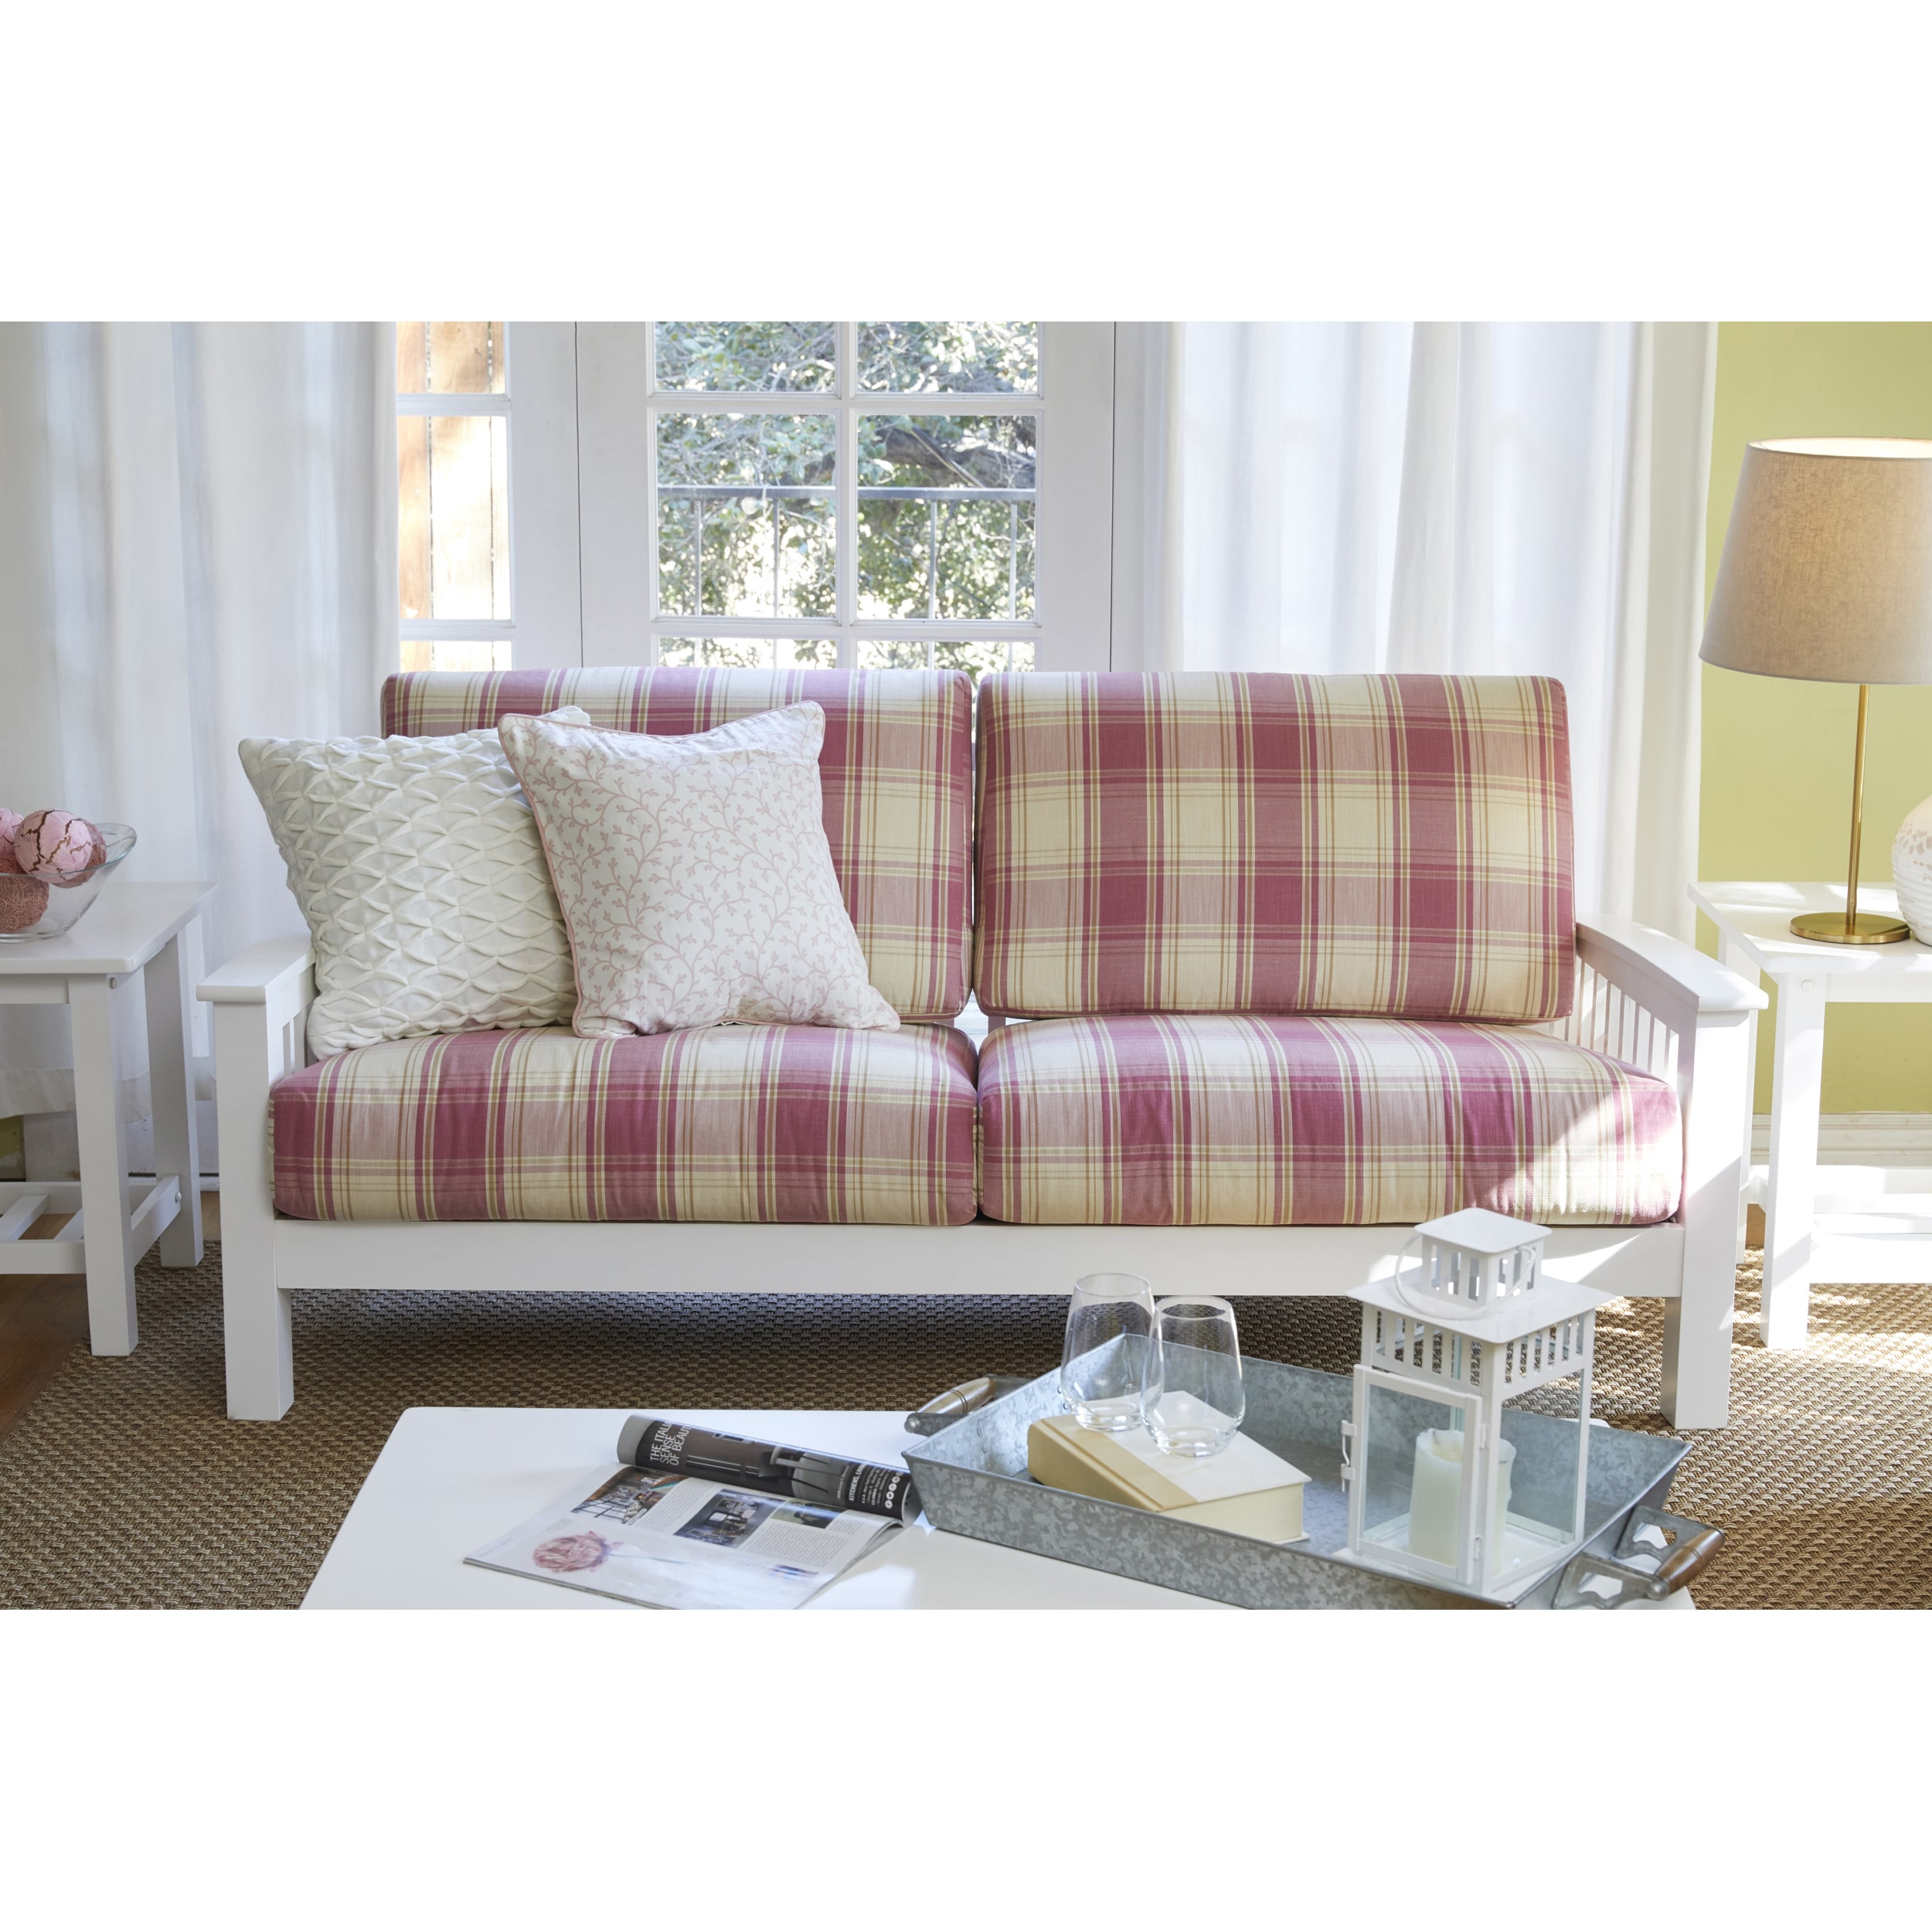 Shop Handy Living Omaha Pink Plaid Mission Style Sofa with Exposed ...